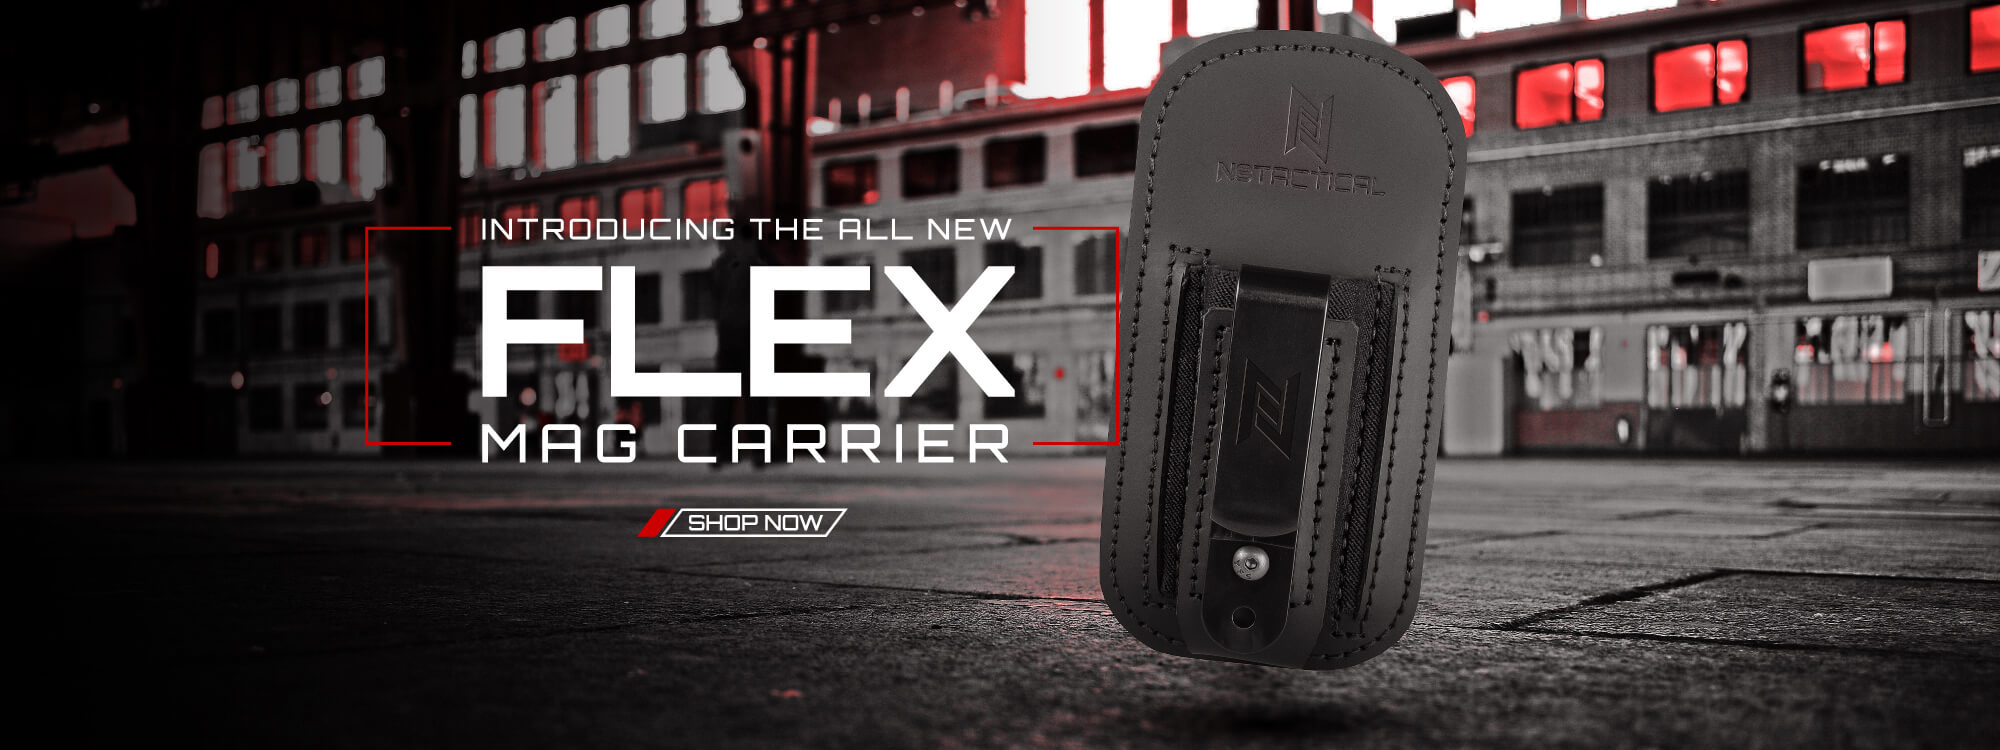 Introducing The All New FLEX Mag Carrier